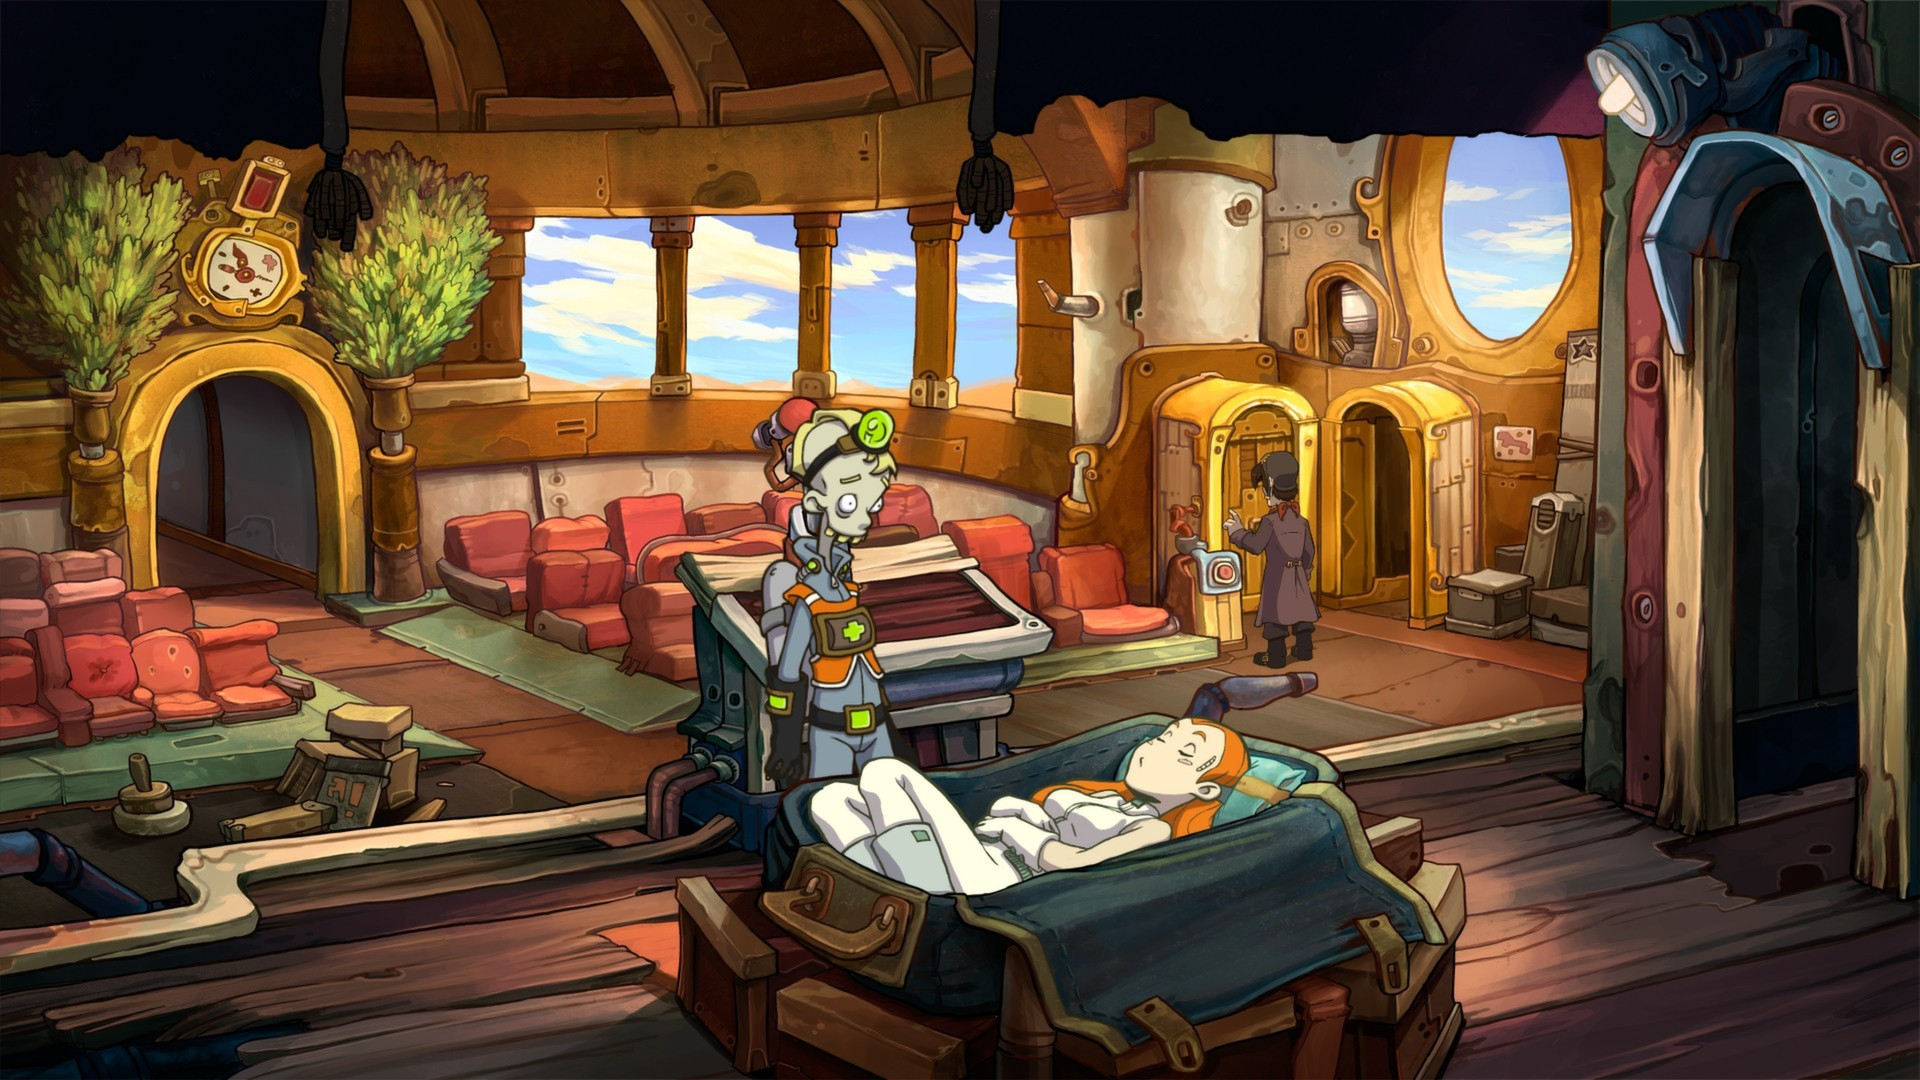 Find the best laptop for Deponia